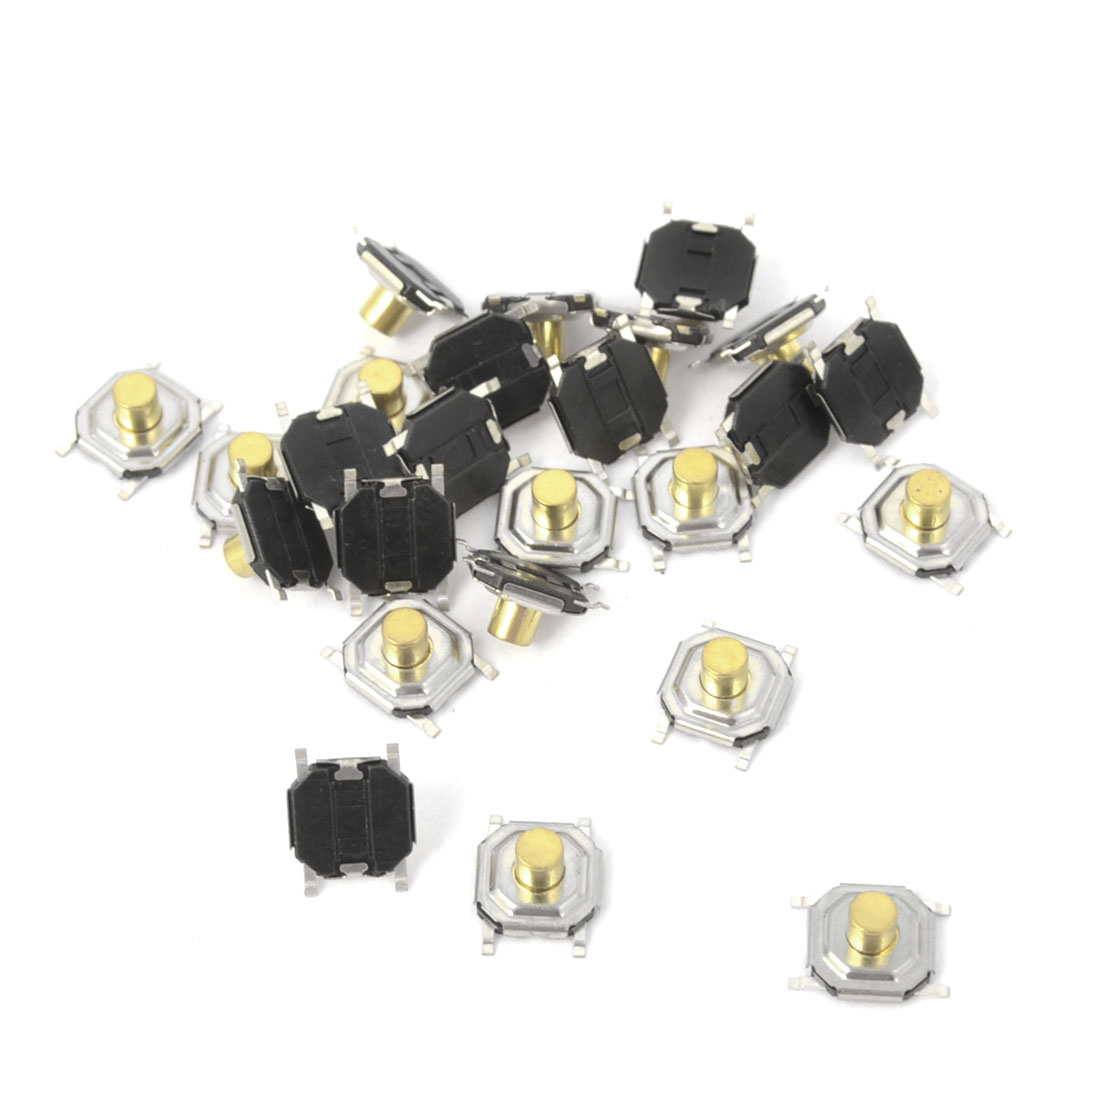 25Pcs Momentary Tact Tactile Push Button Switch 4mmx4mmx3mm 4-pin